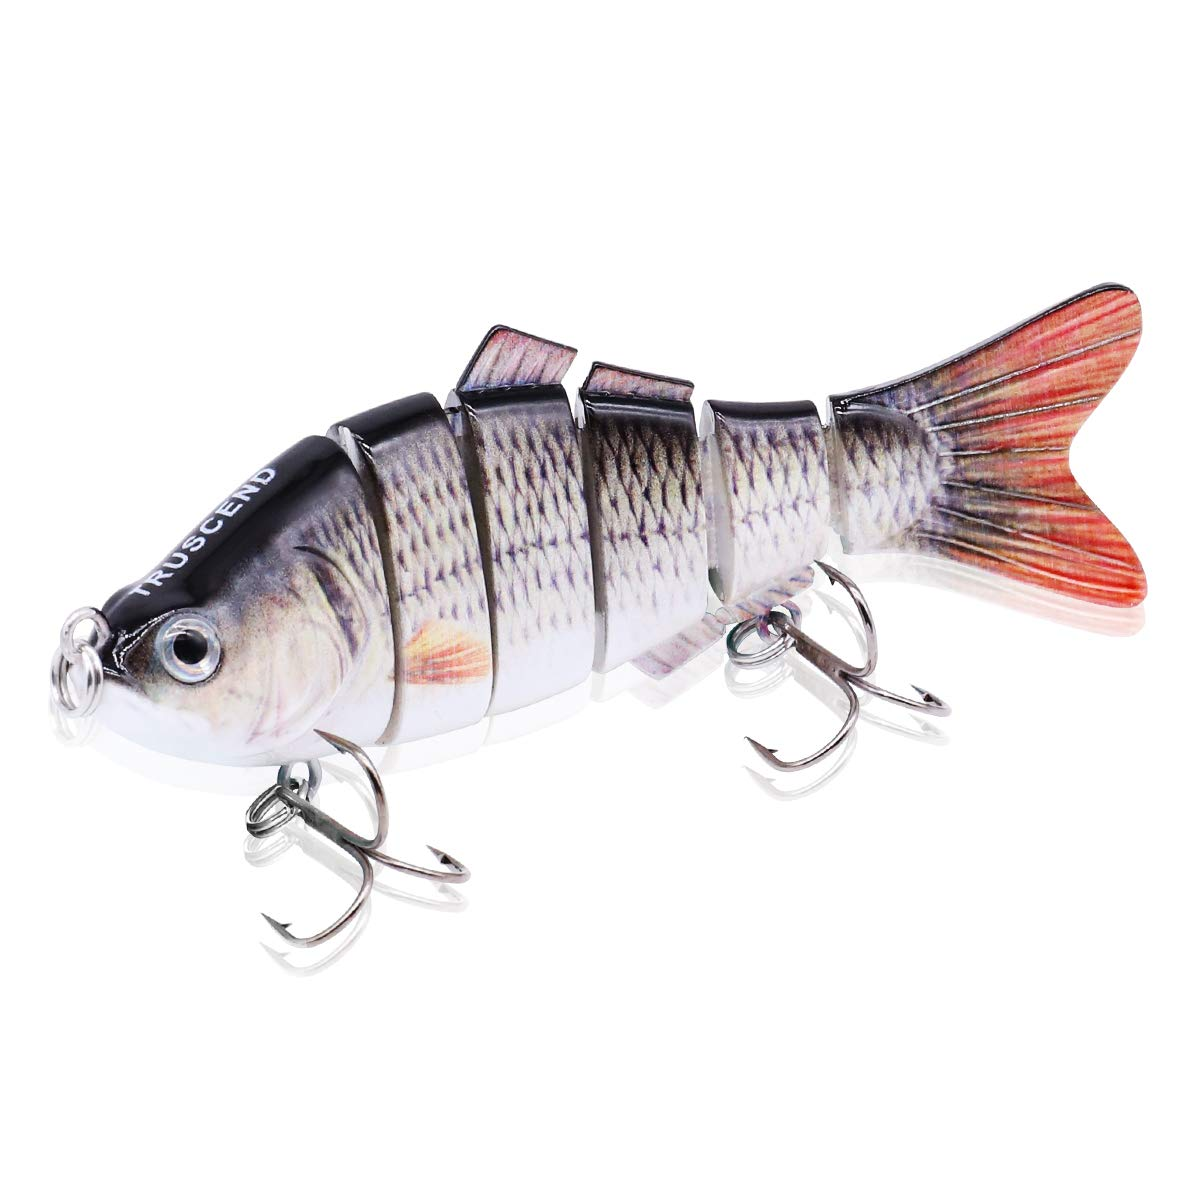 TRUSCEND Swimbaits Glide Baits for Bass Fishing Lures Crankbait Jointed Trout Swimbait with Mustad Hooks (S-1)